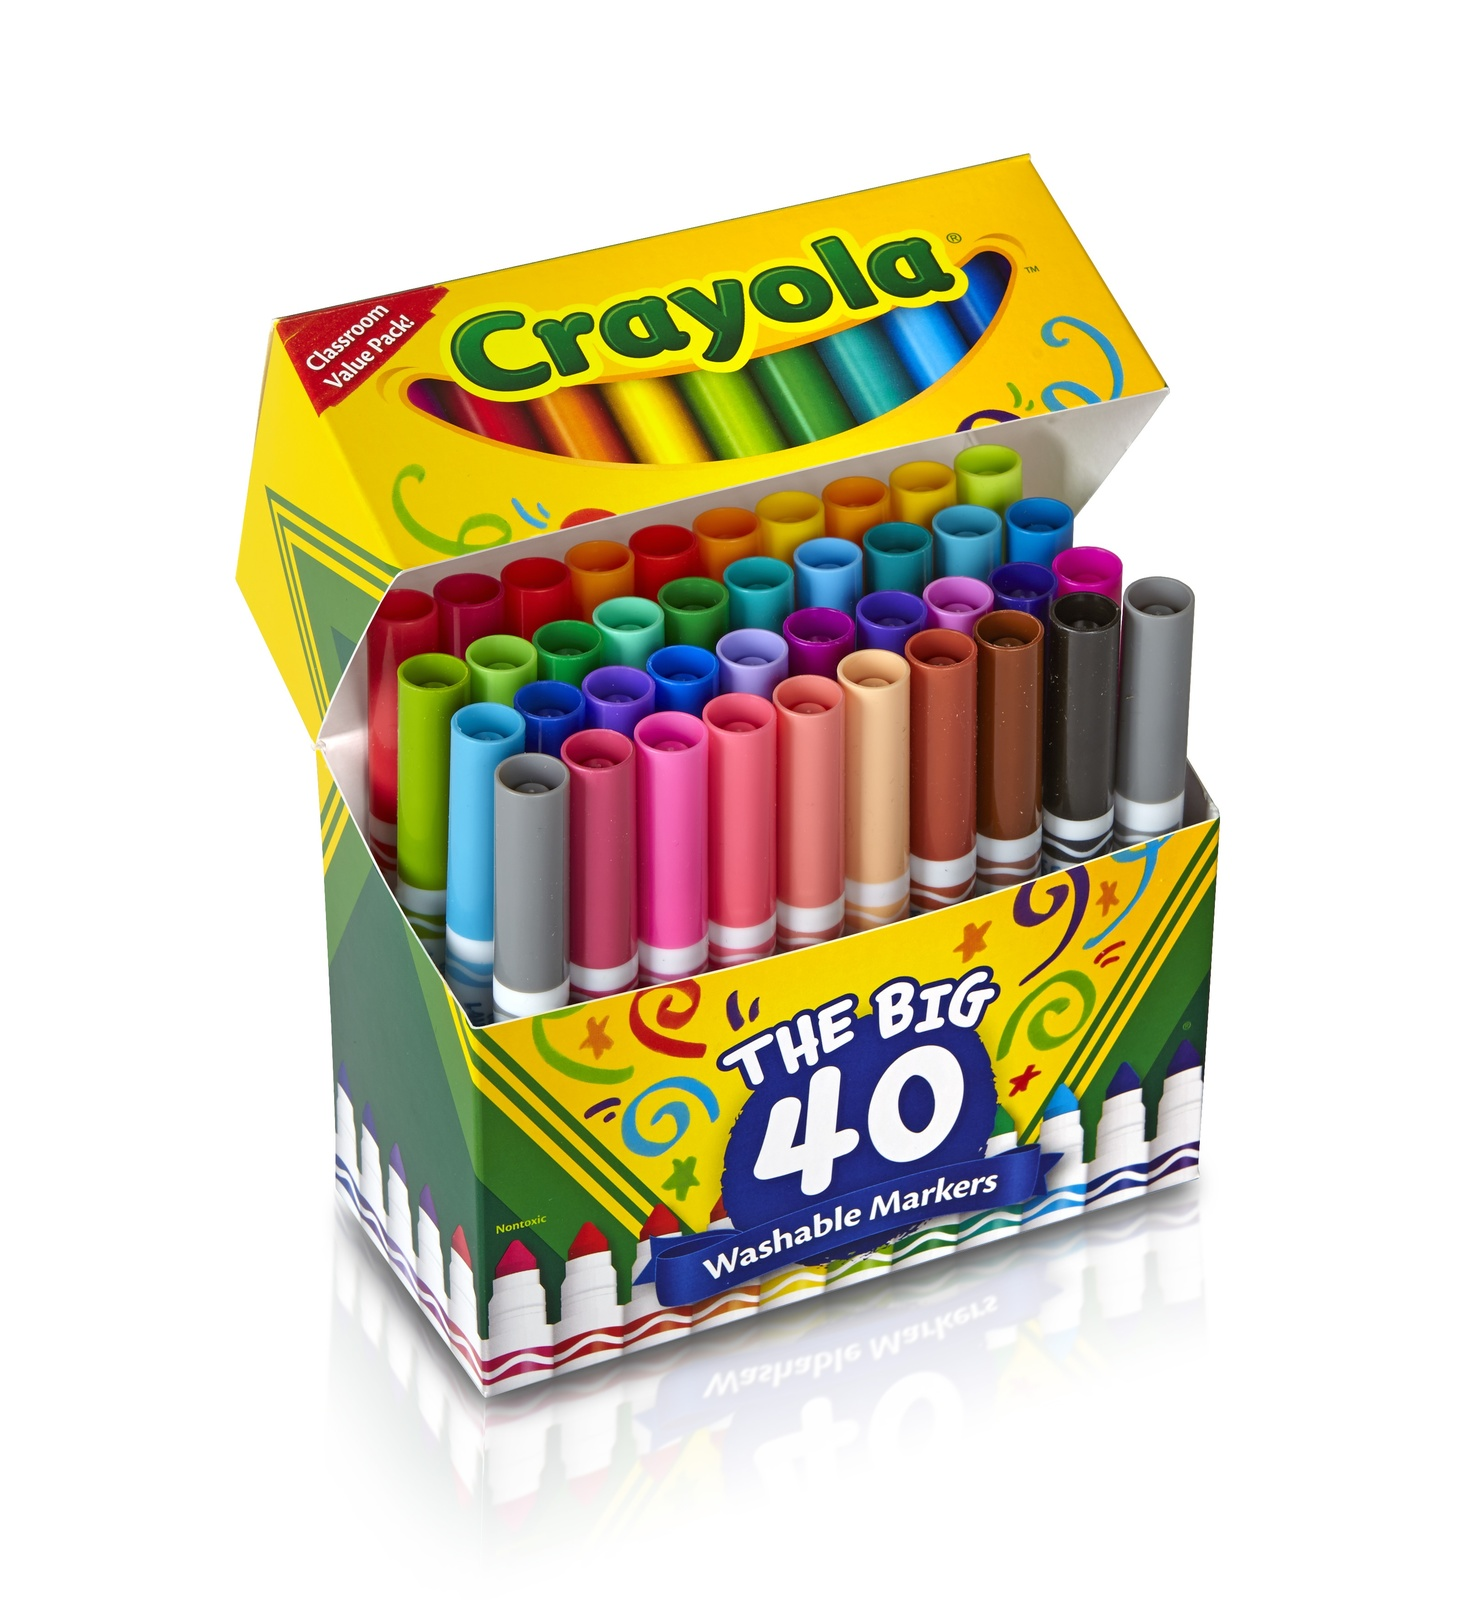 Crayola Washable Markers - The Big 40 image